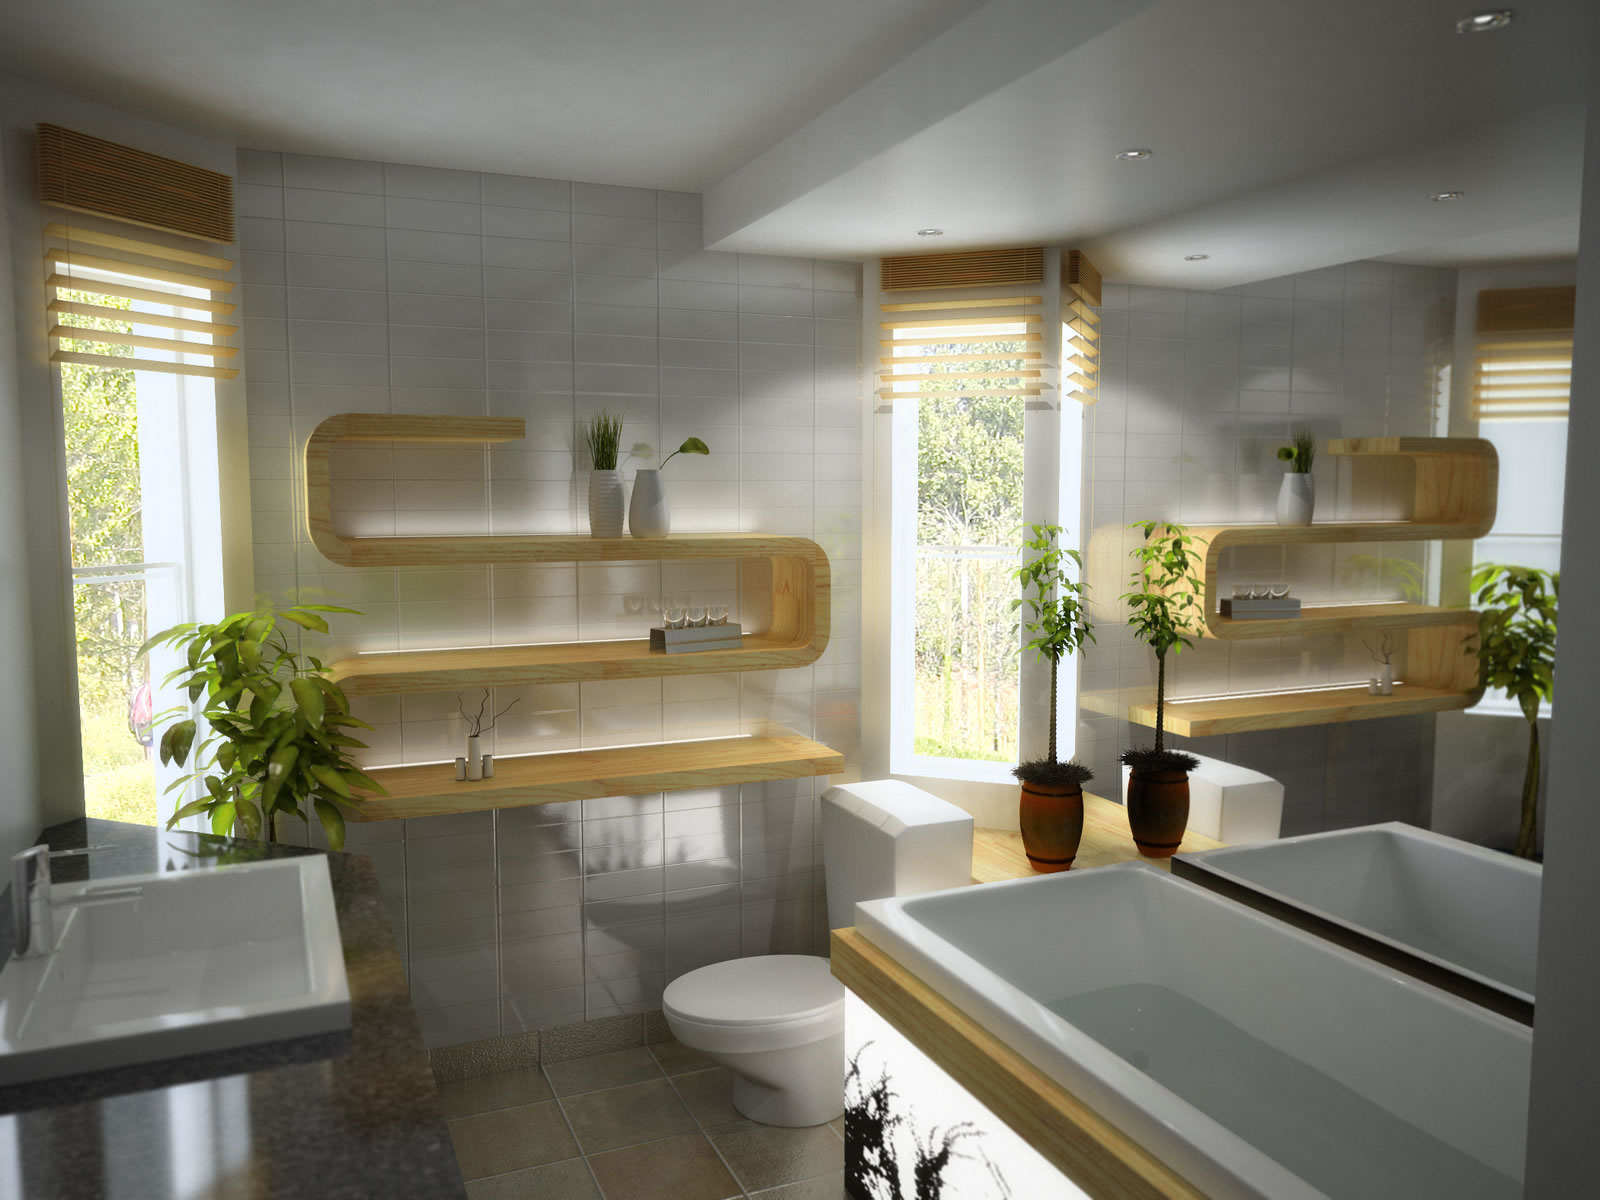 301 moved permanently - Kitchen and bathroom designers ...